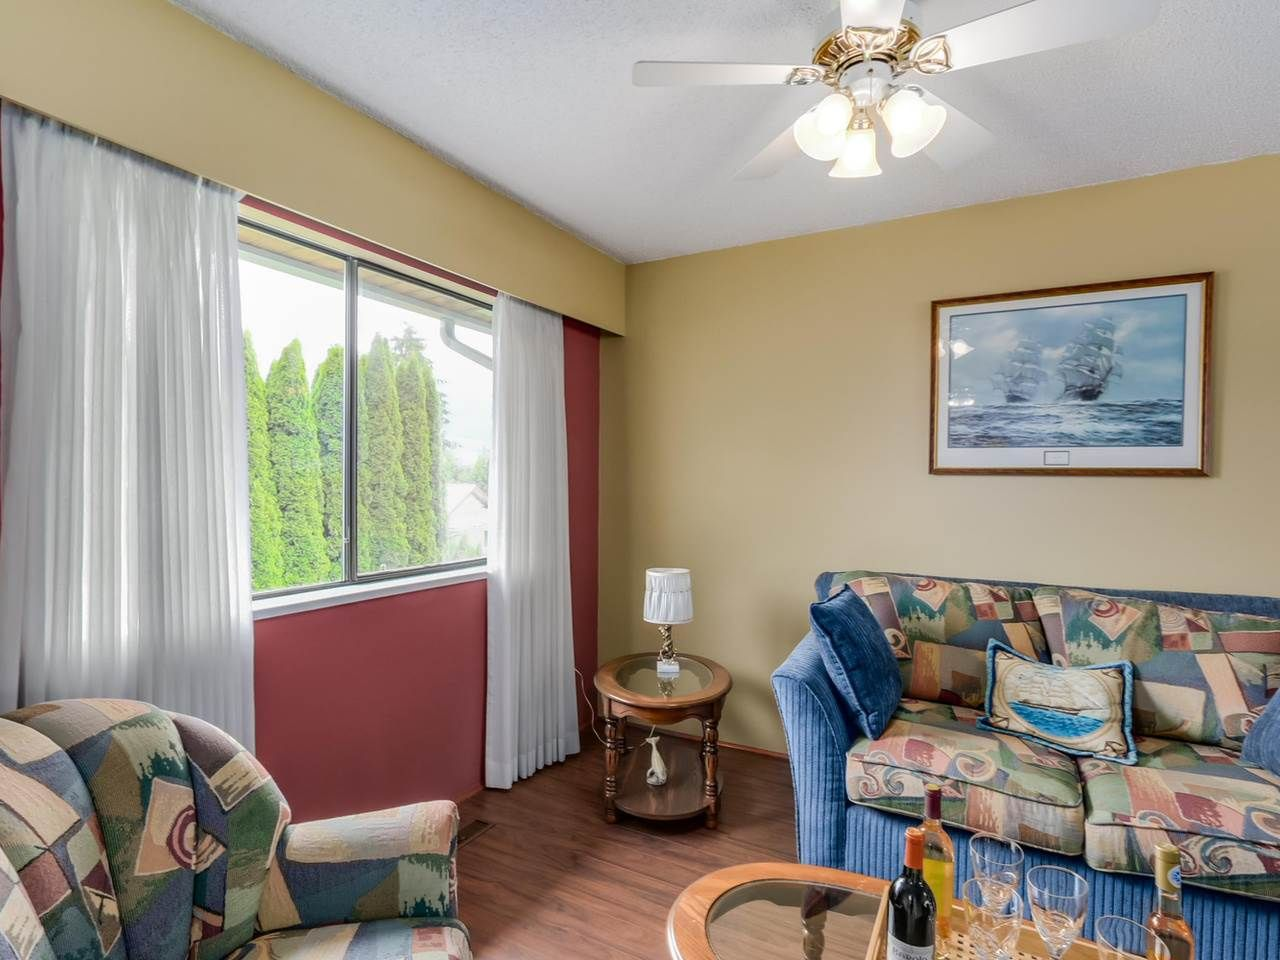 Photo 10: Photos: 4032 AYLING Street in Port Coquitlam: Oxford Heights House for sale : MLS®# R2074528